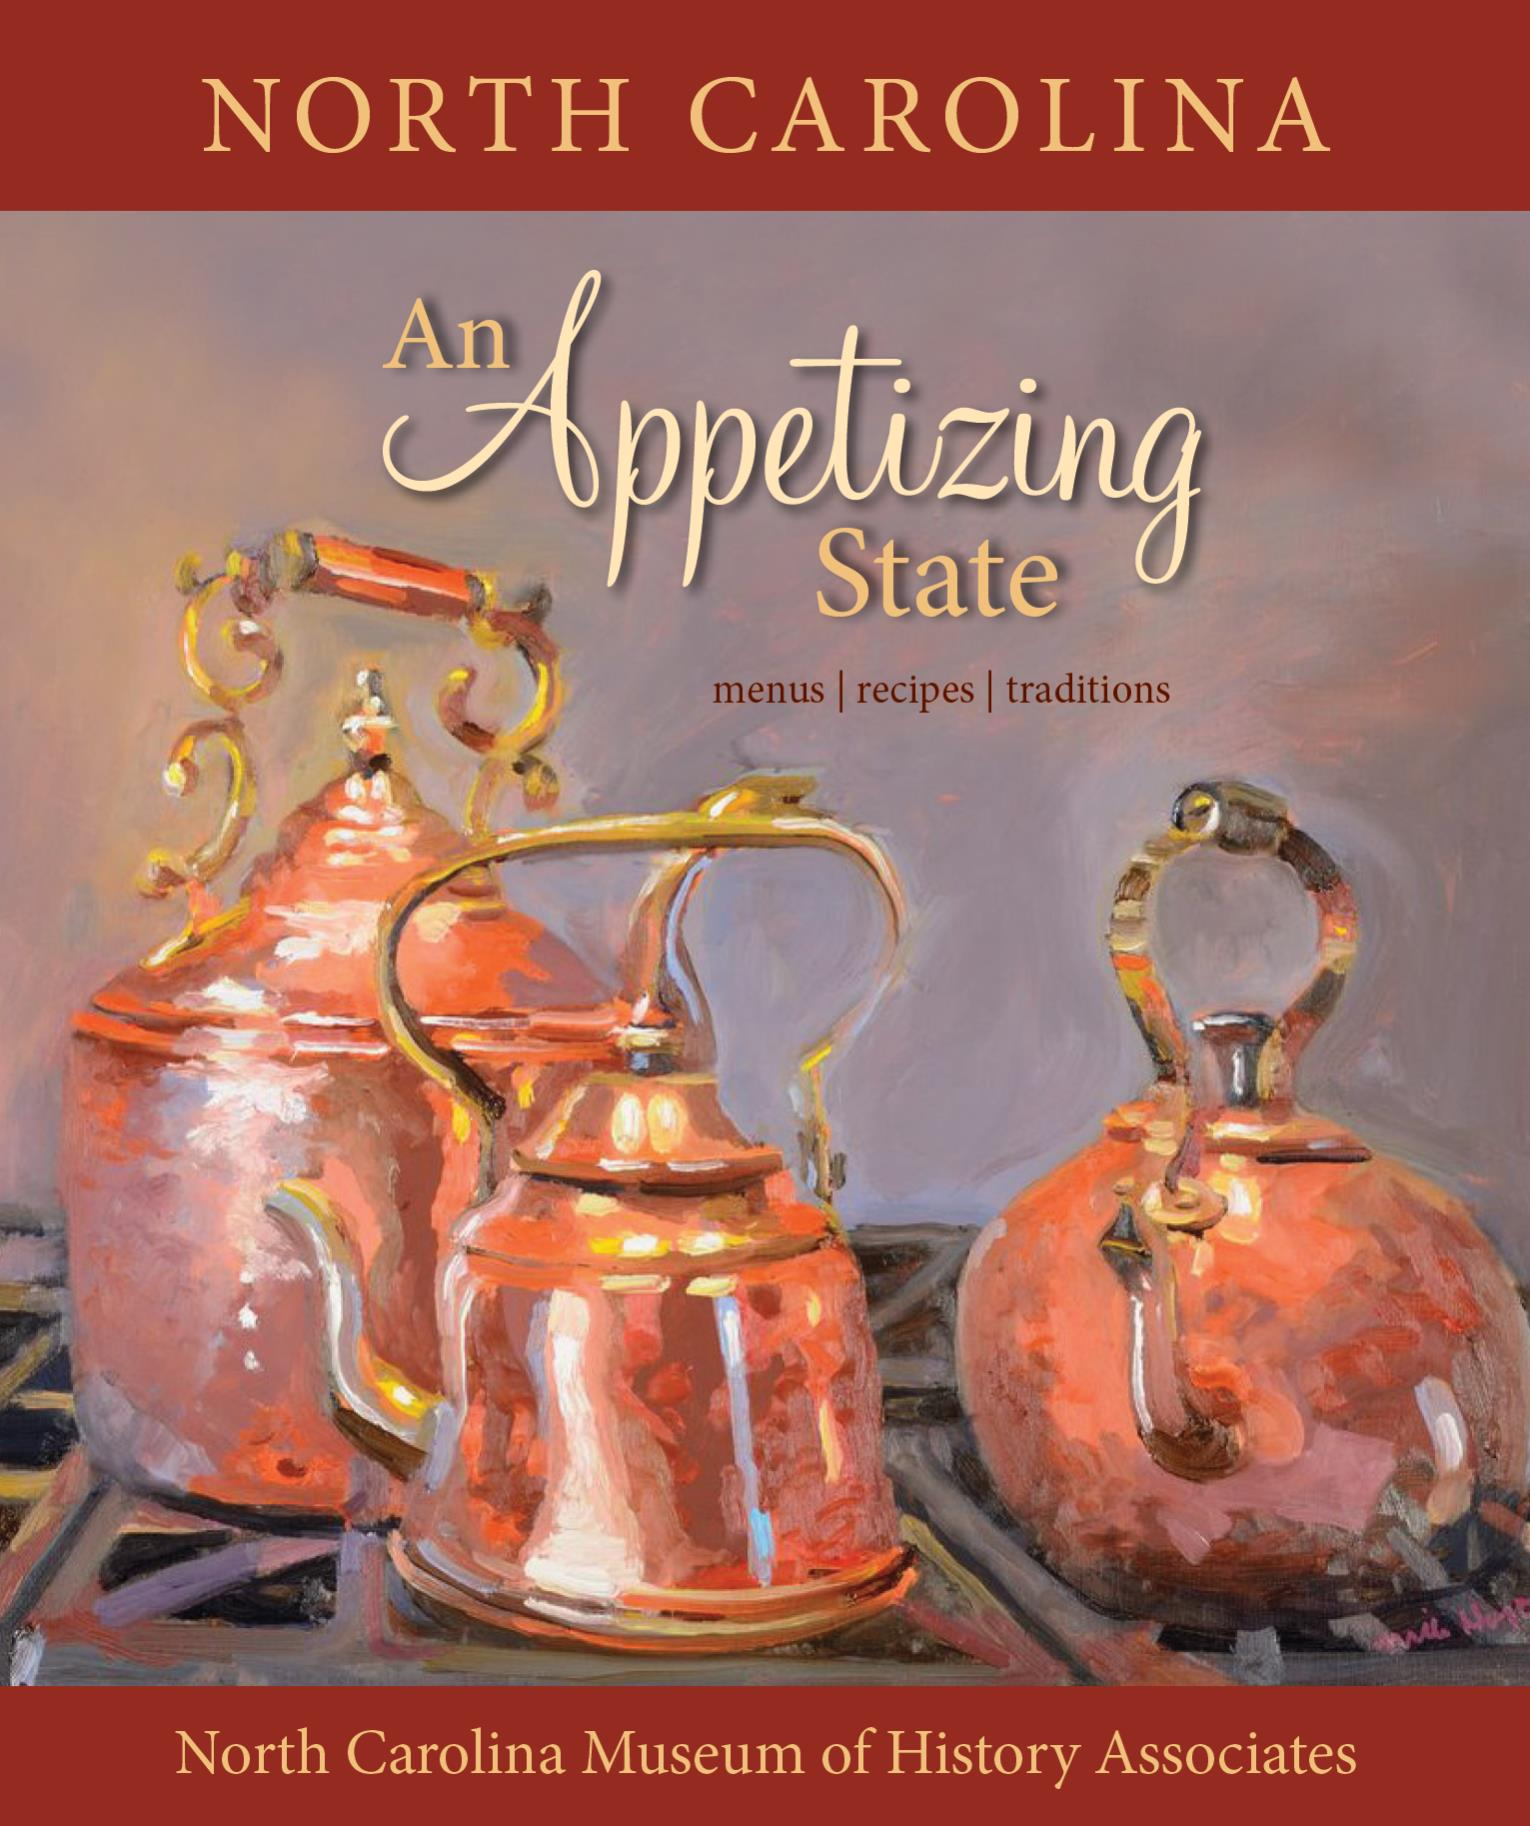 North Carolina: An Appetizing State! Cookbook